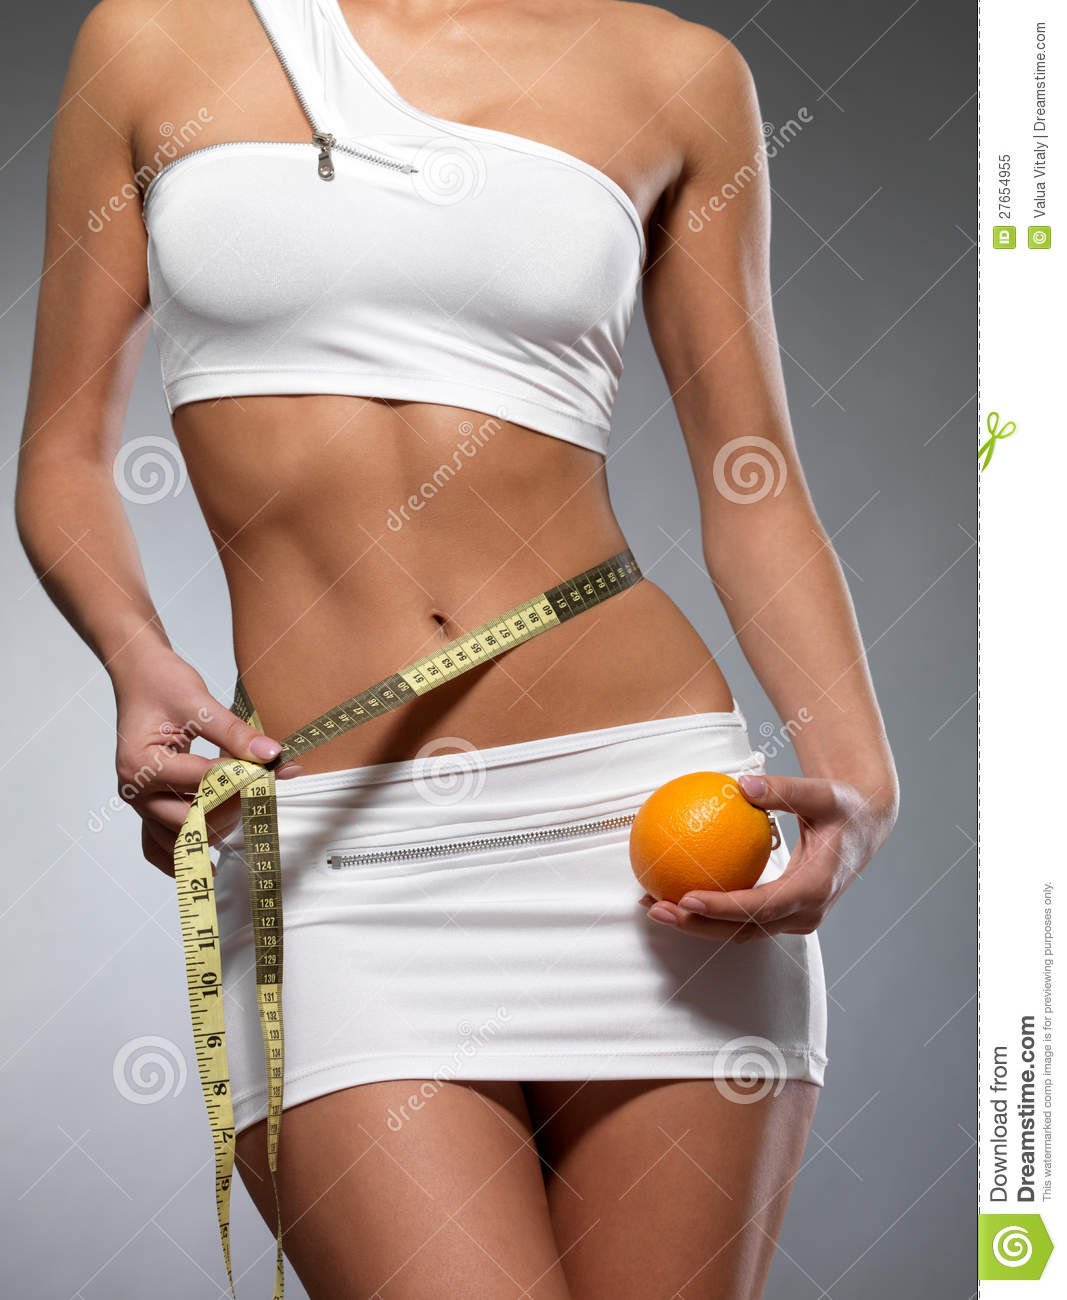 beauty female body with measuring tape and orange royalty free stock photo image 27654955. Black Bedroom Furniture Sets. Home Design Ideas